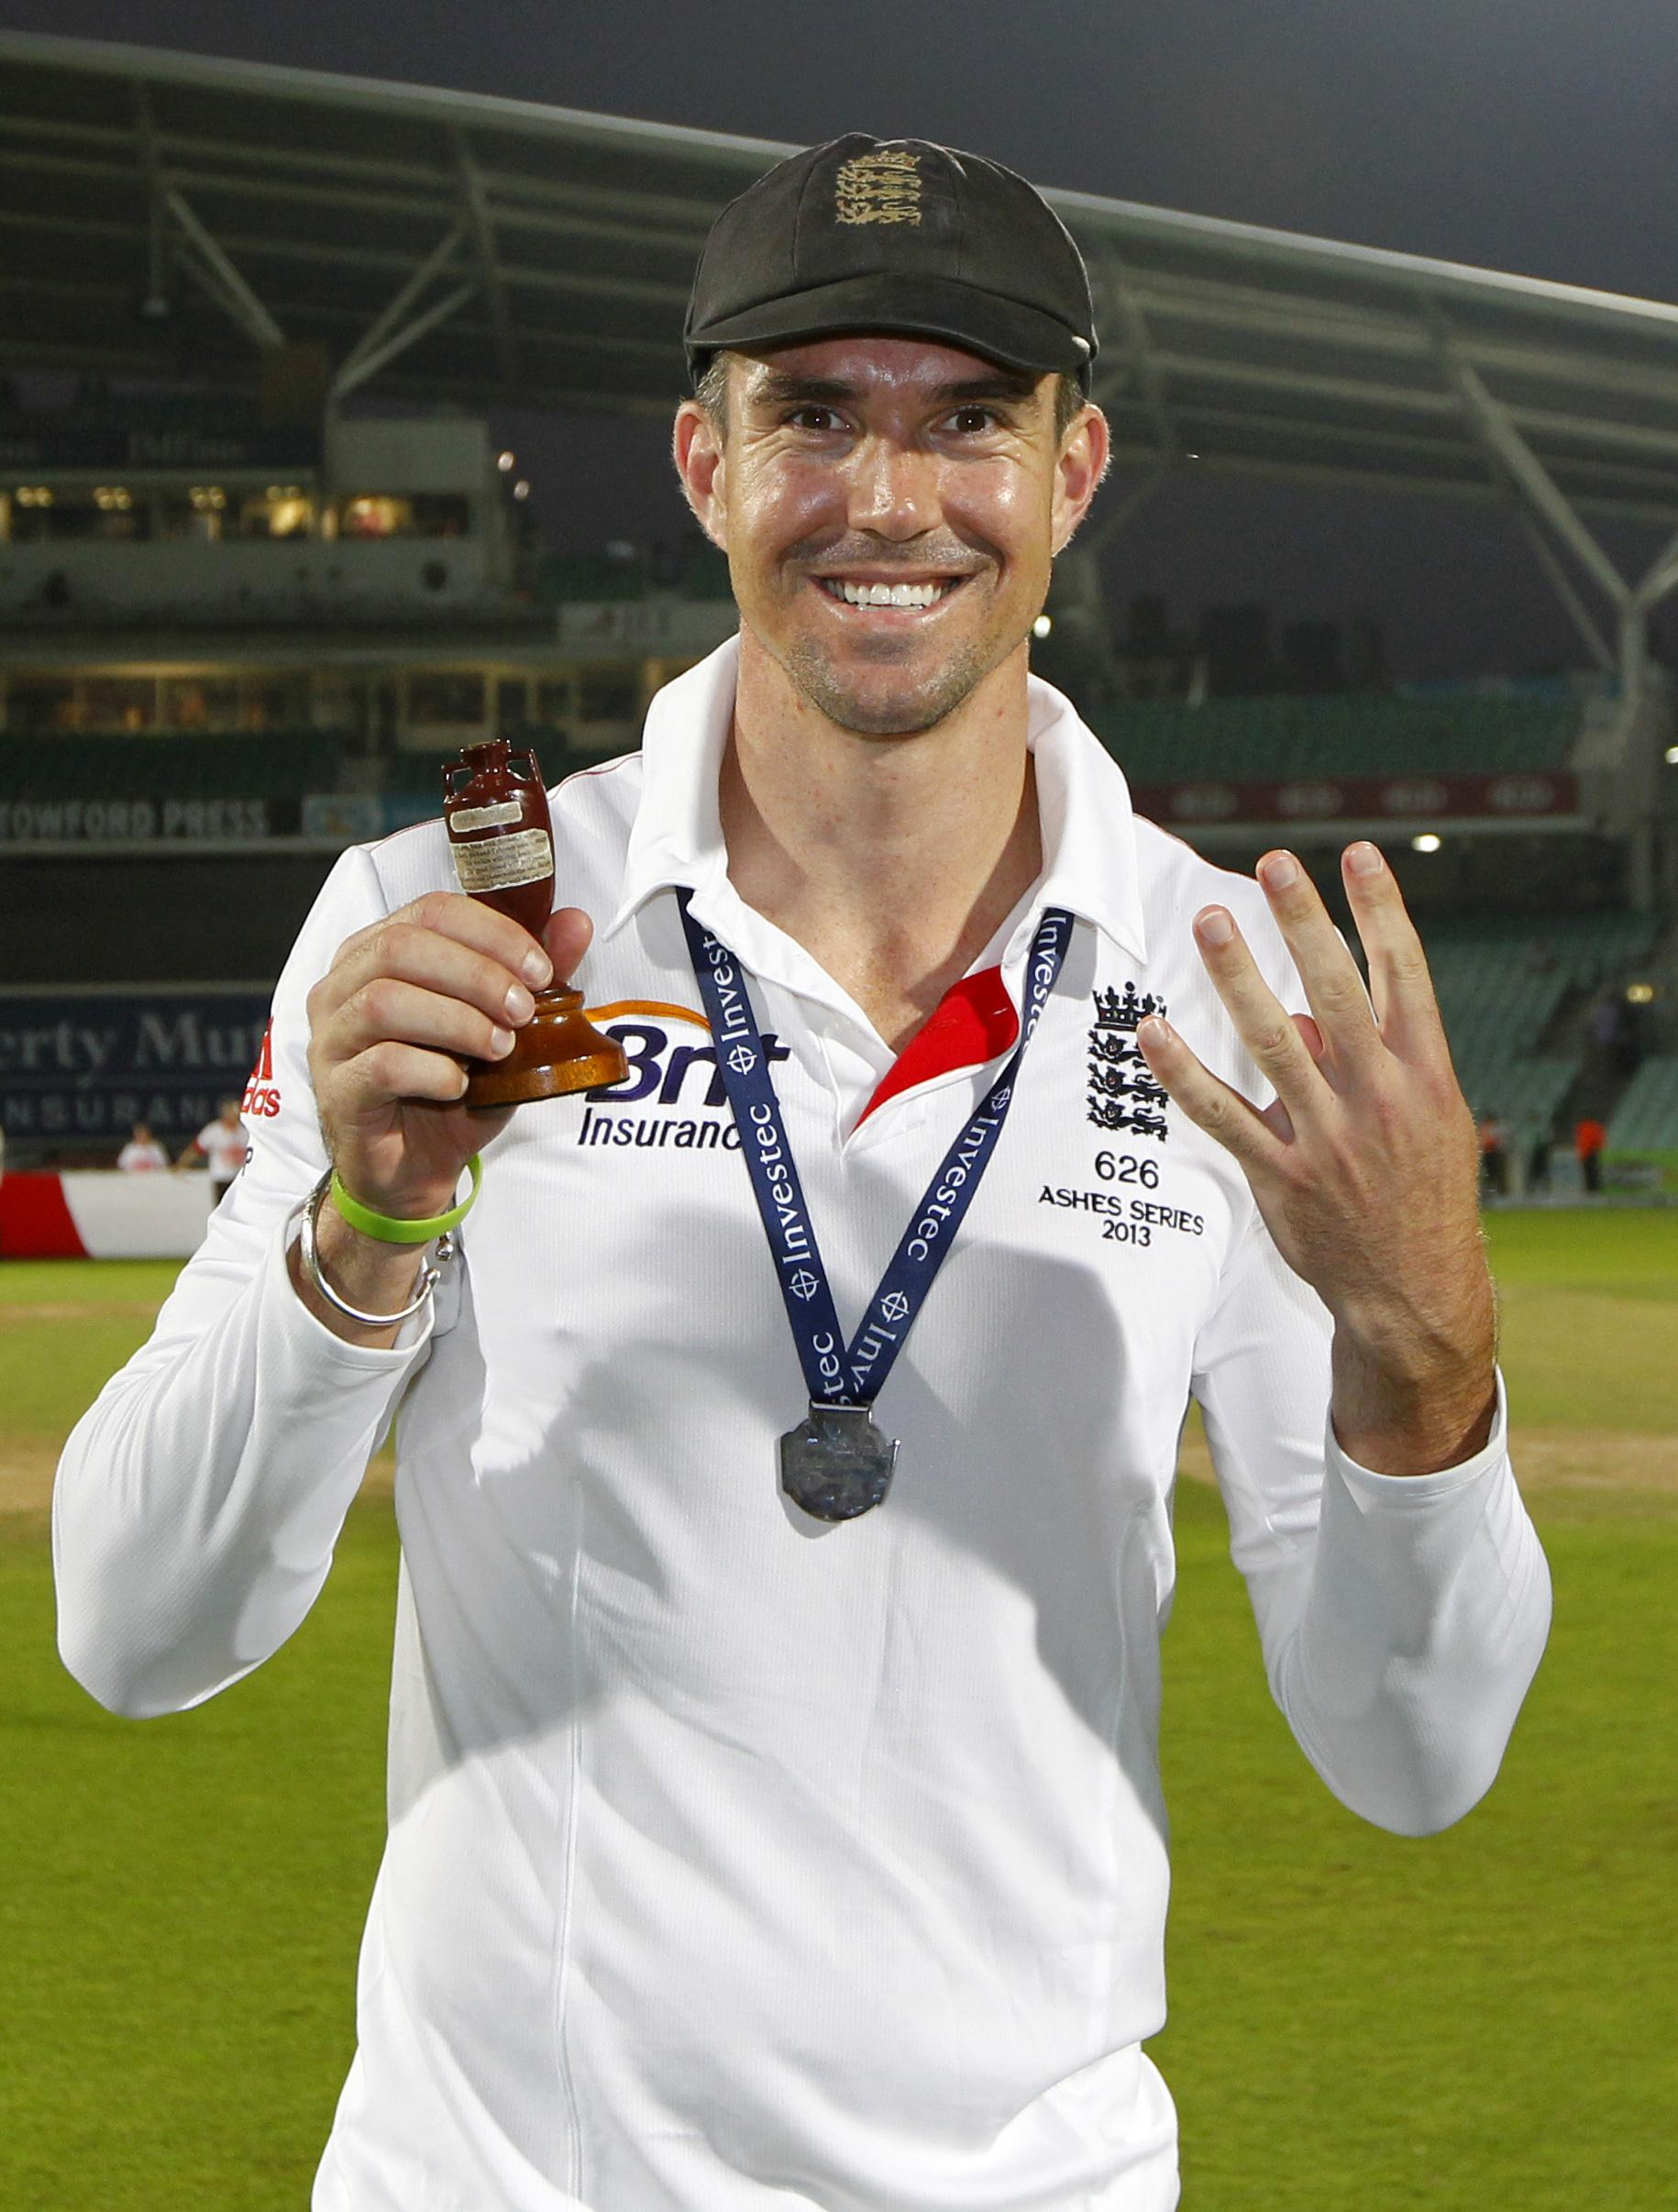 Kevin Pietersen won a number of Ashes series in some of England's best years